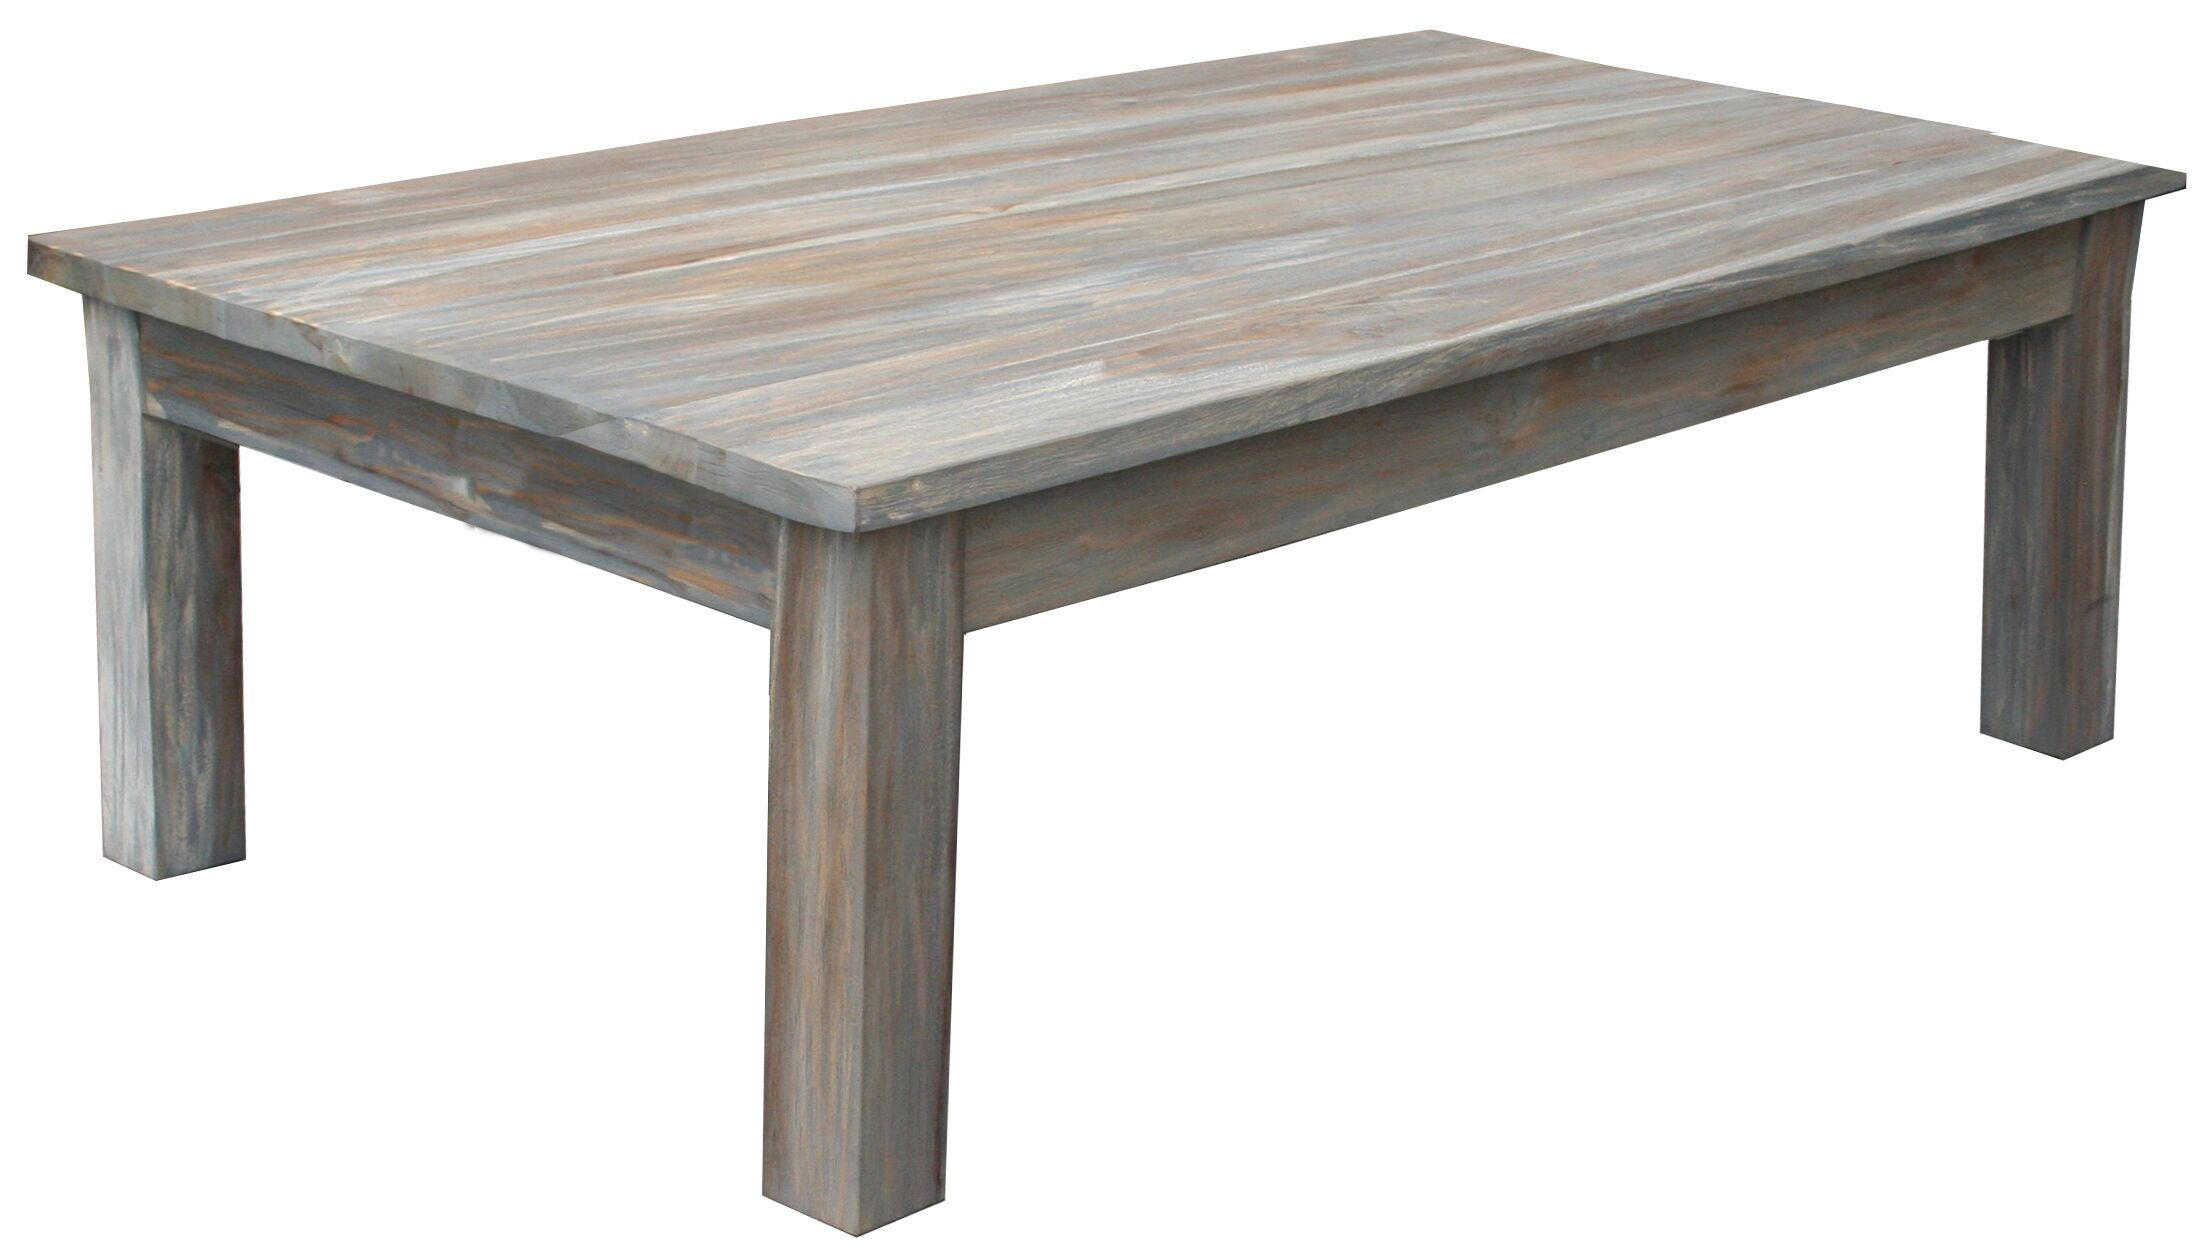 Lorie Teak Rustic Coffee Table